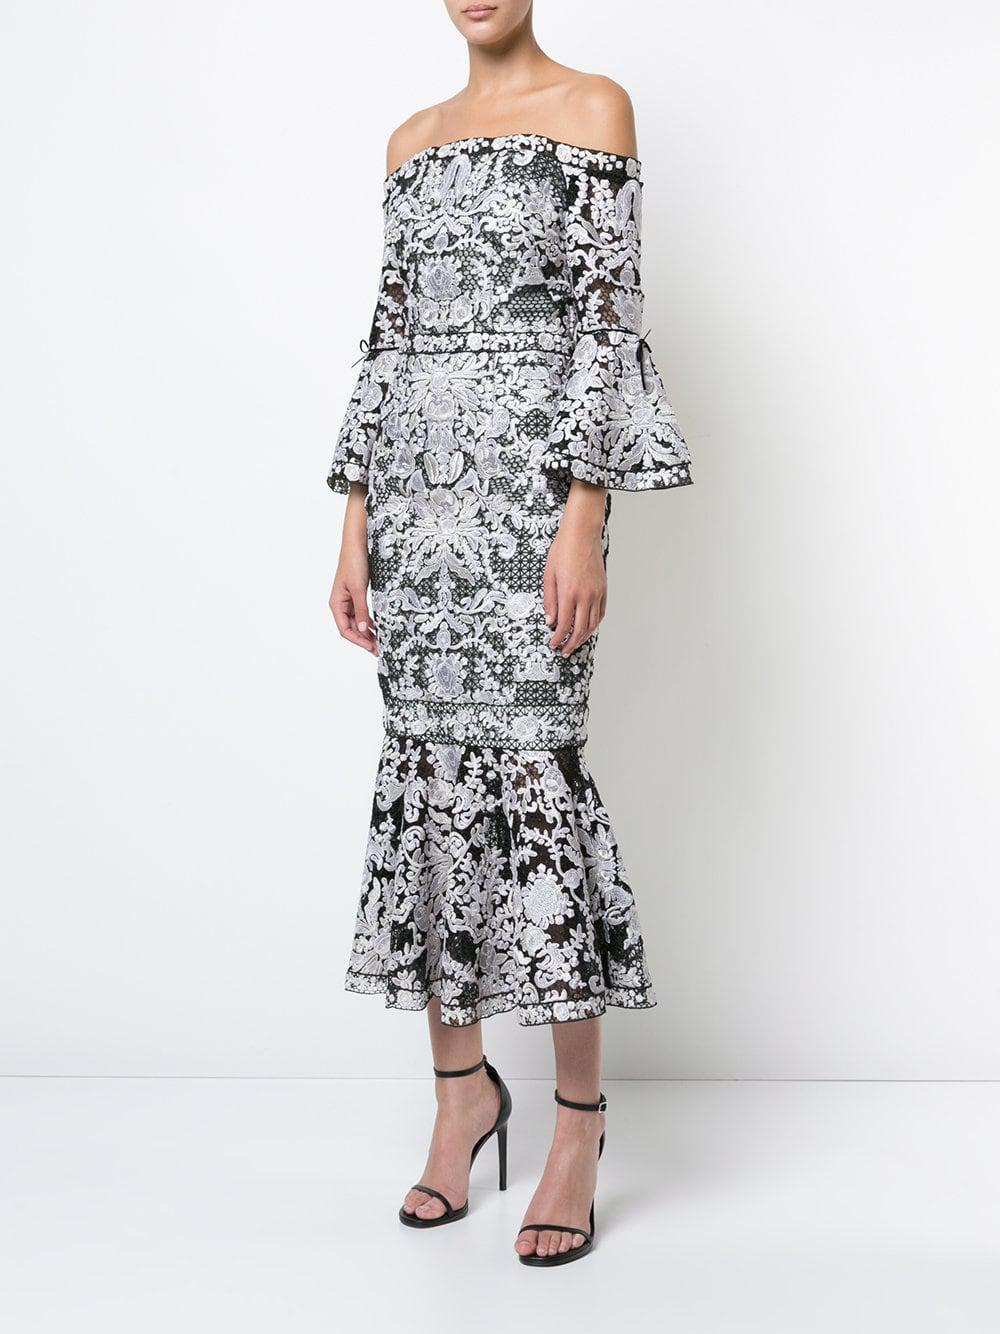 38317f26 Lyst - Marchesa notte Lace-embroidered Midi Dress in Black